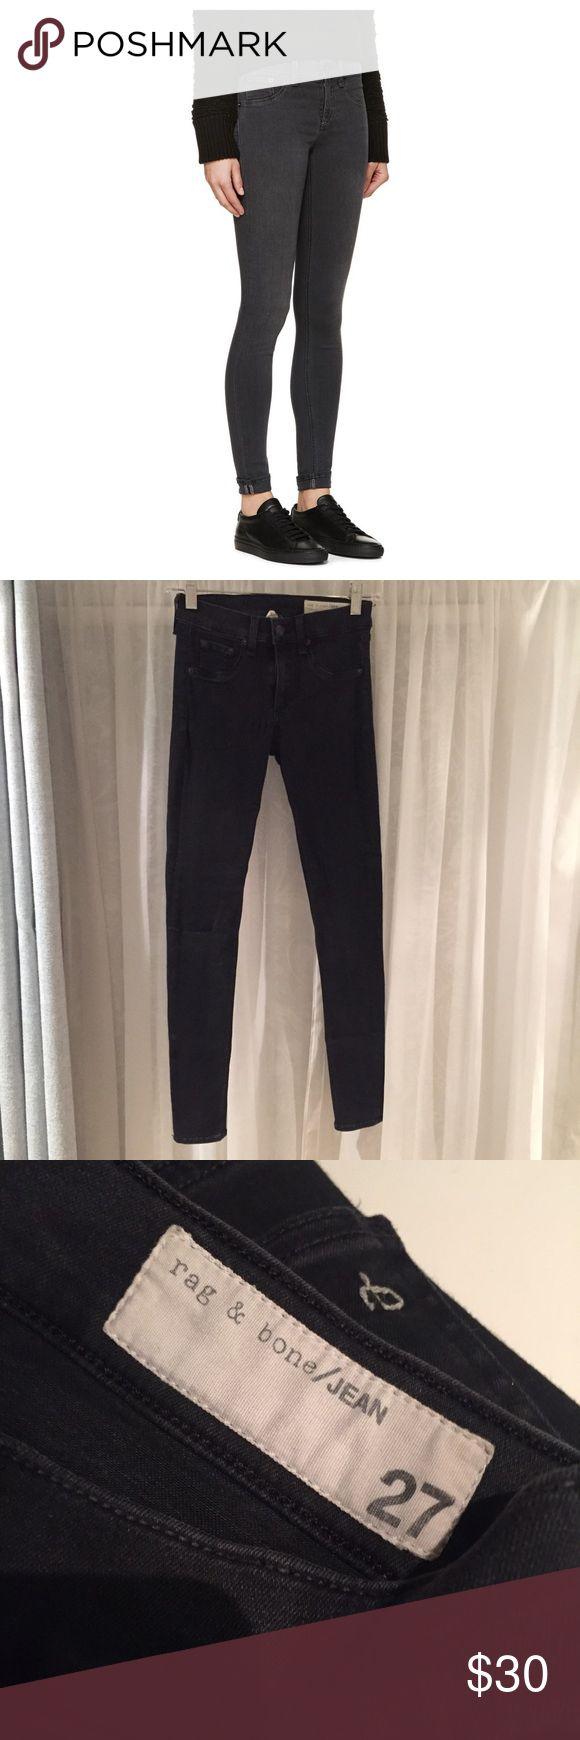 Rag & Bone Charcoal Legging Super stretchy charcoal colored rag & bone legging Jean. Definitely worn! It's a little stretched out next to the zip from wearing and washing. Besides that, they still look pretty good! Size 27. rag & bone Jeans Skinny